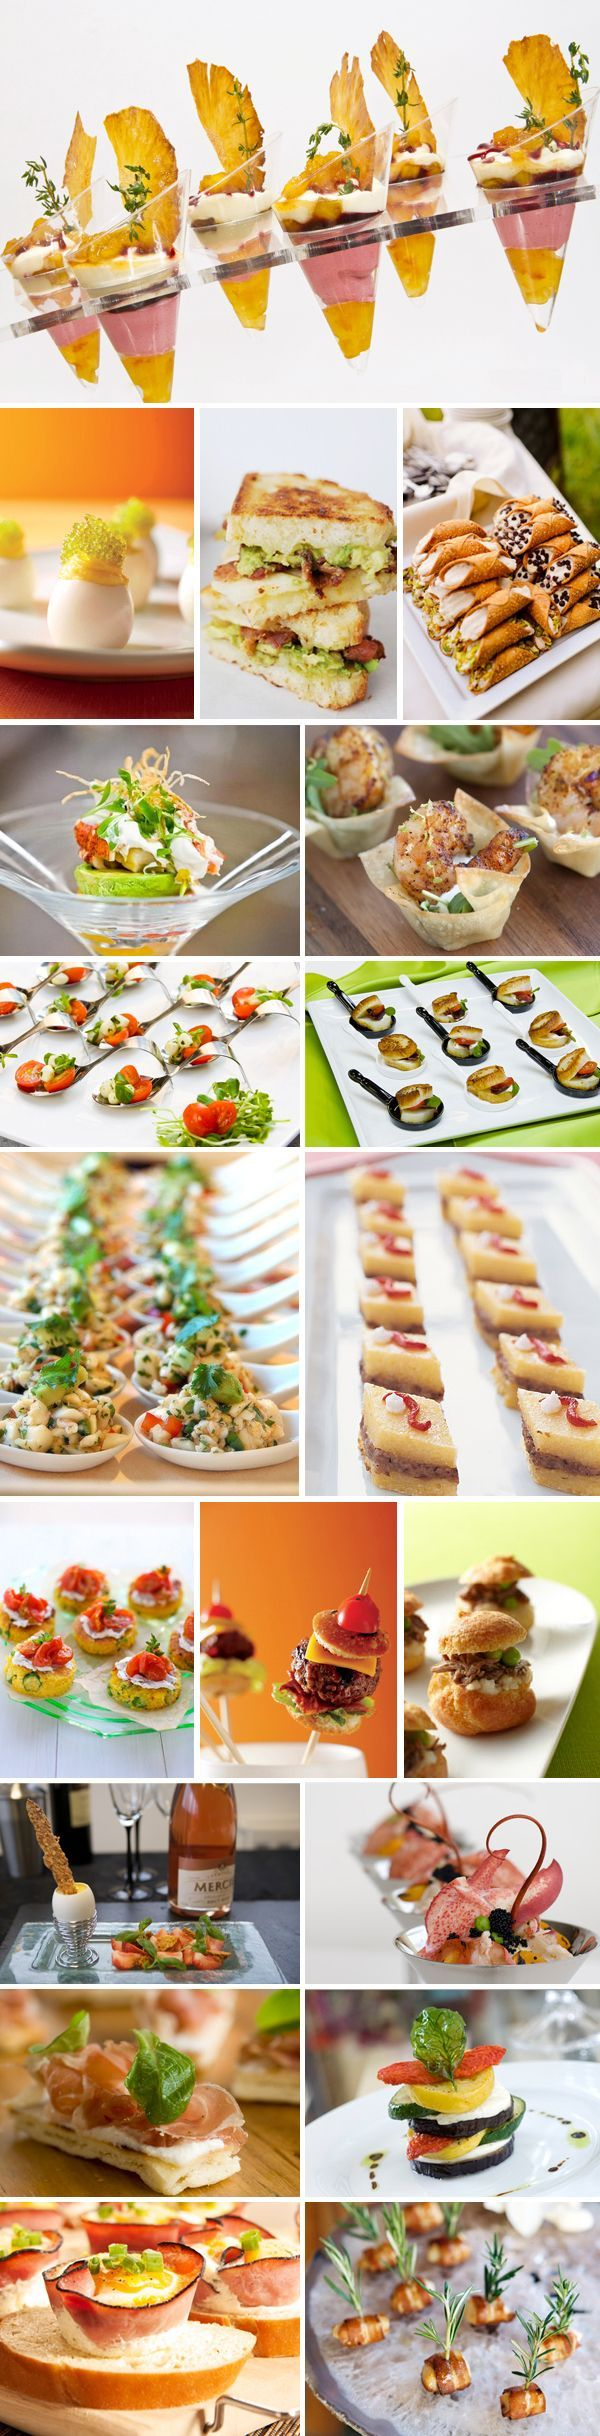 hors d'oeuvres!